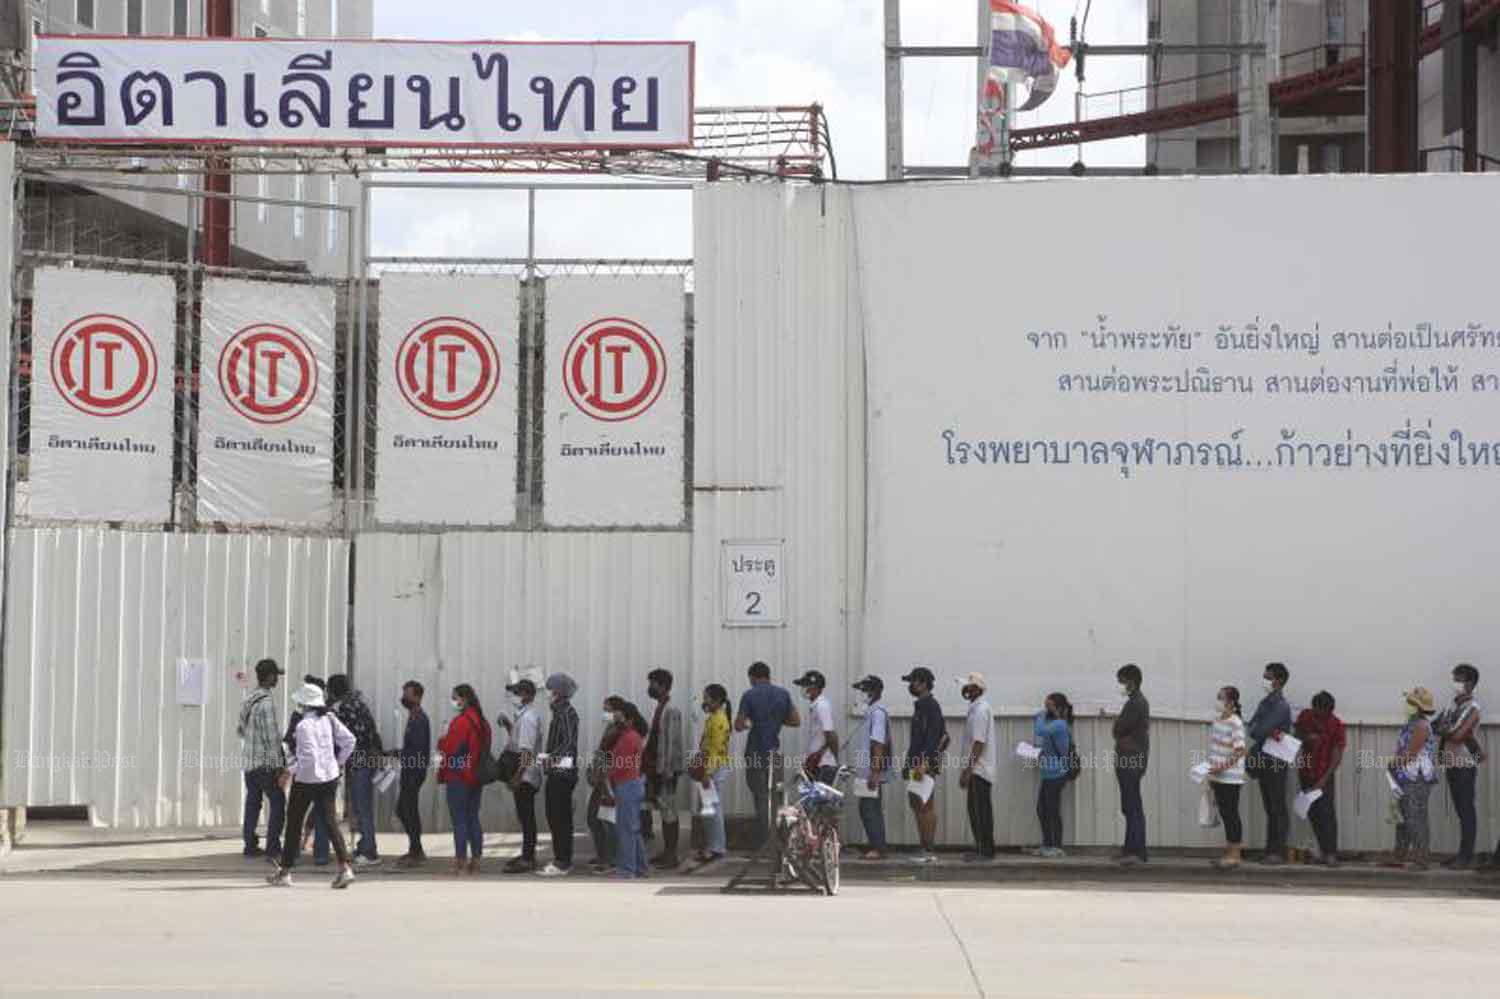 People living near the construction workers' camp of Italian-Thai Development Plc in Laksi district, Bangkok, line up for Covid-19 tests on Tuesday. The camp is one of 21 active clusters in 16 districts of Bangkok (Photo: Pattarapong Chatpattarasill)